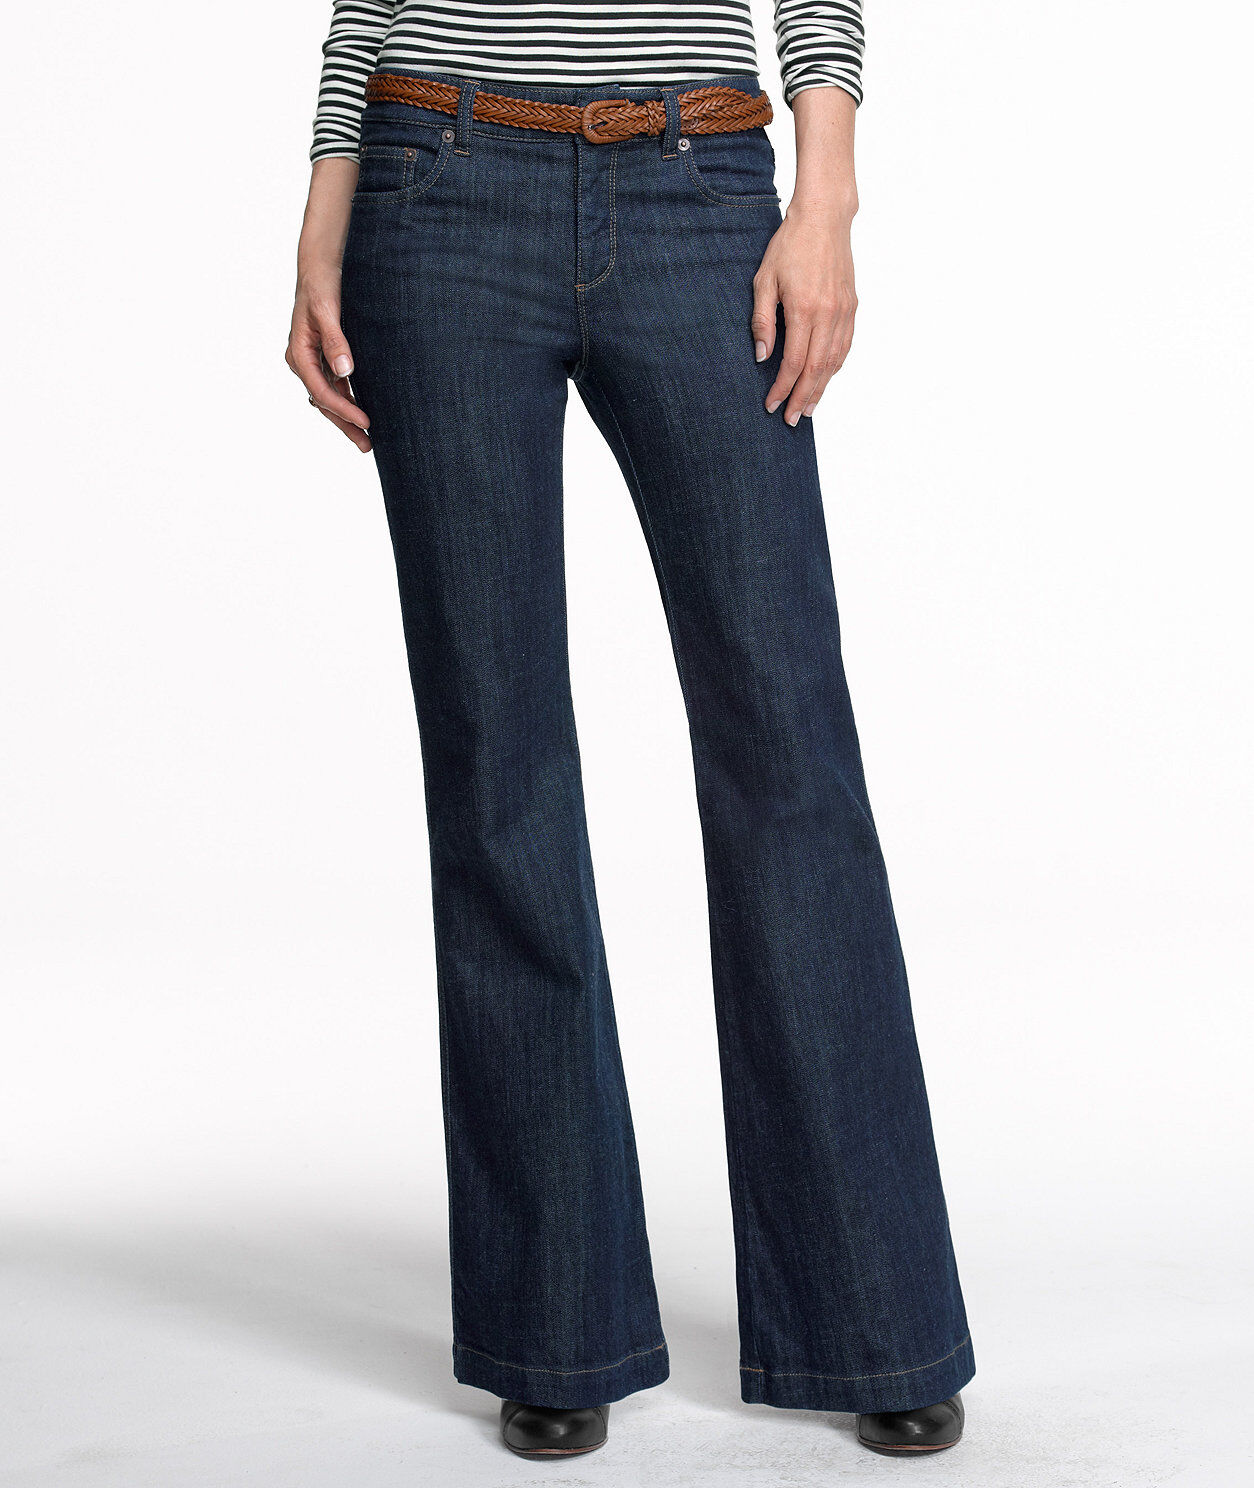 Women's High Waist Wide Leg Denim Flare Jeans Palazzo Jeans Long Pants with Belt. from $ 25 99 Prime. out of 5 stars 9. GALMINT. Women's Fashion Bell Bottom High Waist Slimming Curvy Bootcut Denim Jeans. from $ 15 99 Prime. Skirt BL.